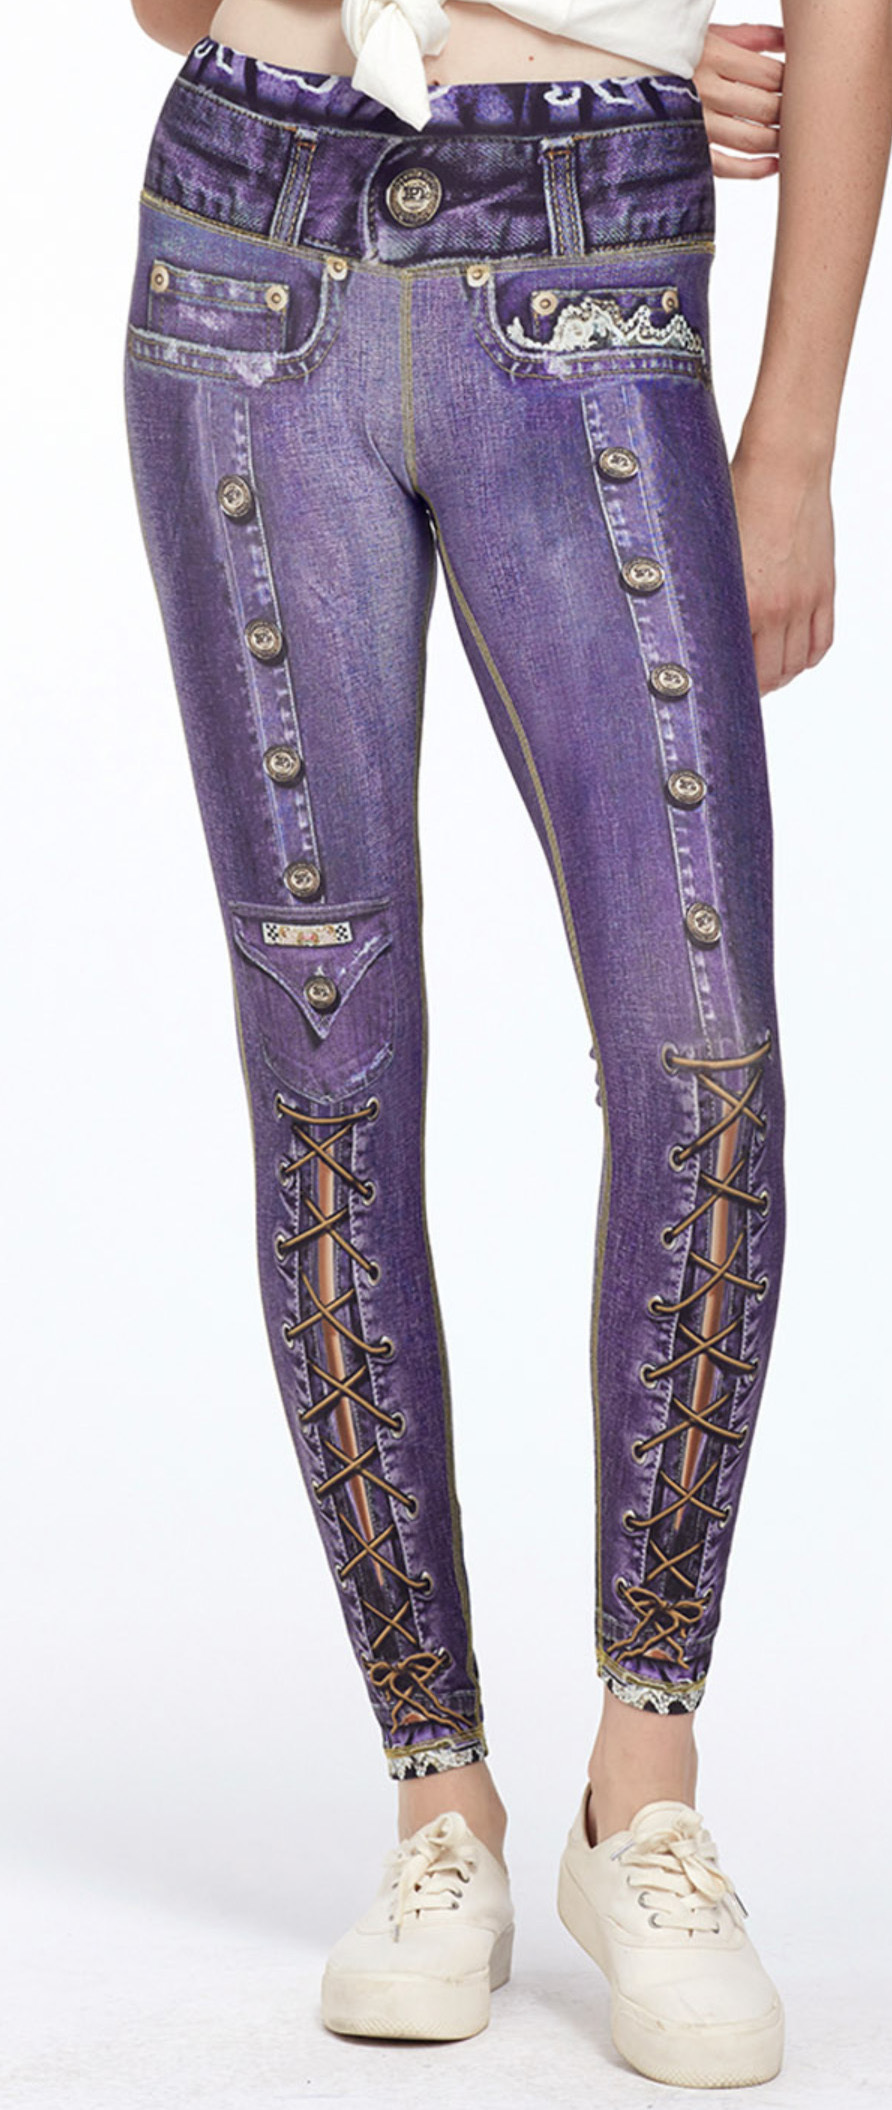 IPNG: Love Me Criss Cross Denim Illusion Legging (Many Colors!) IPNG_BSCL-012_006_007_008_009_010_011